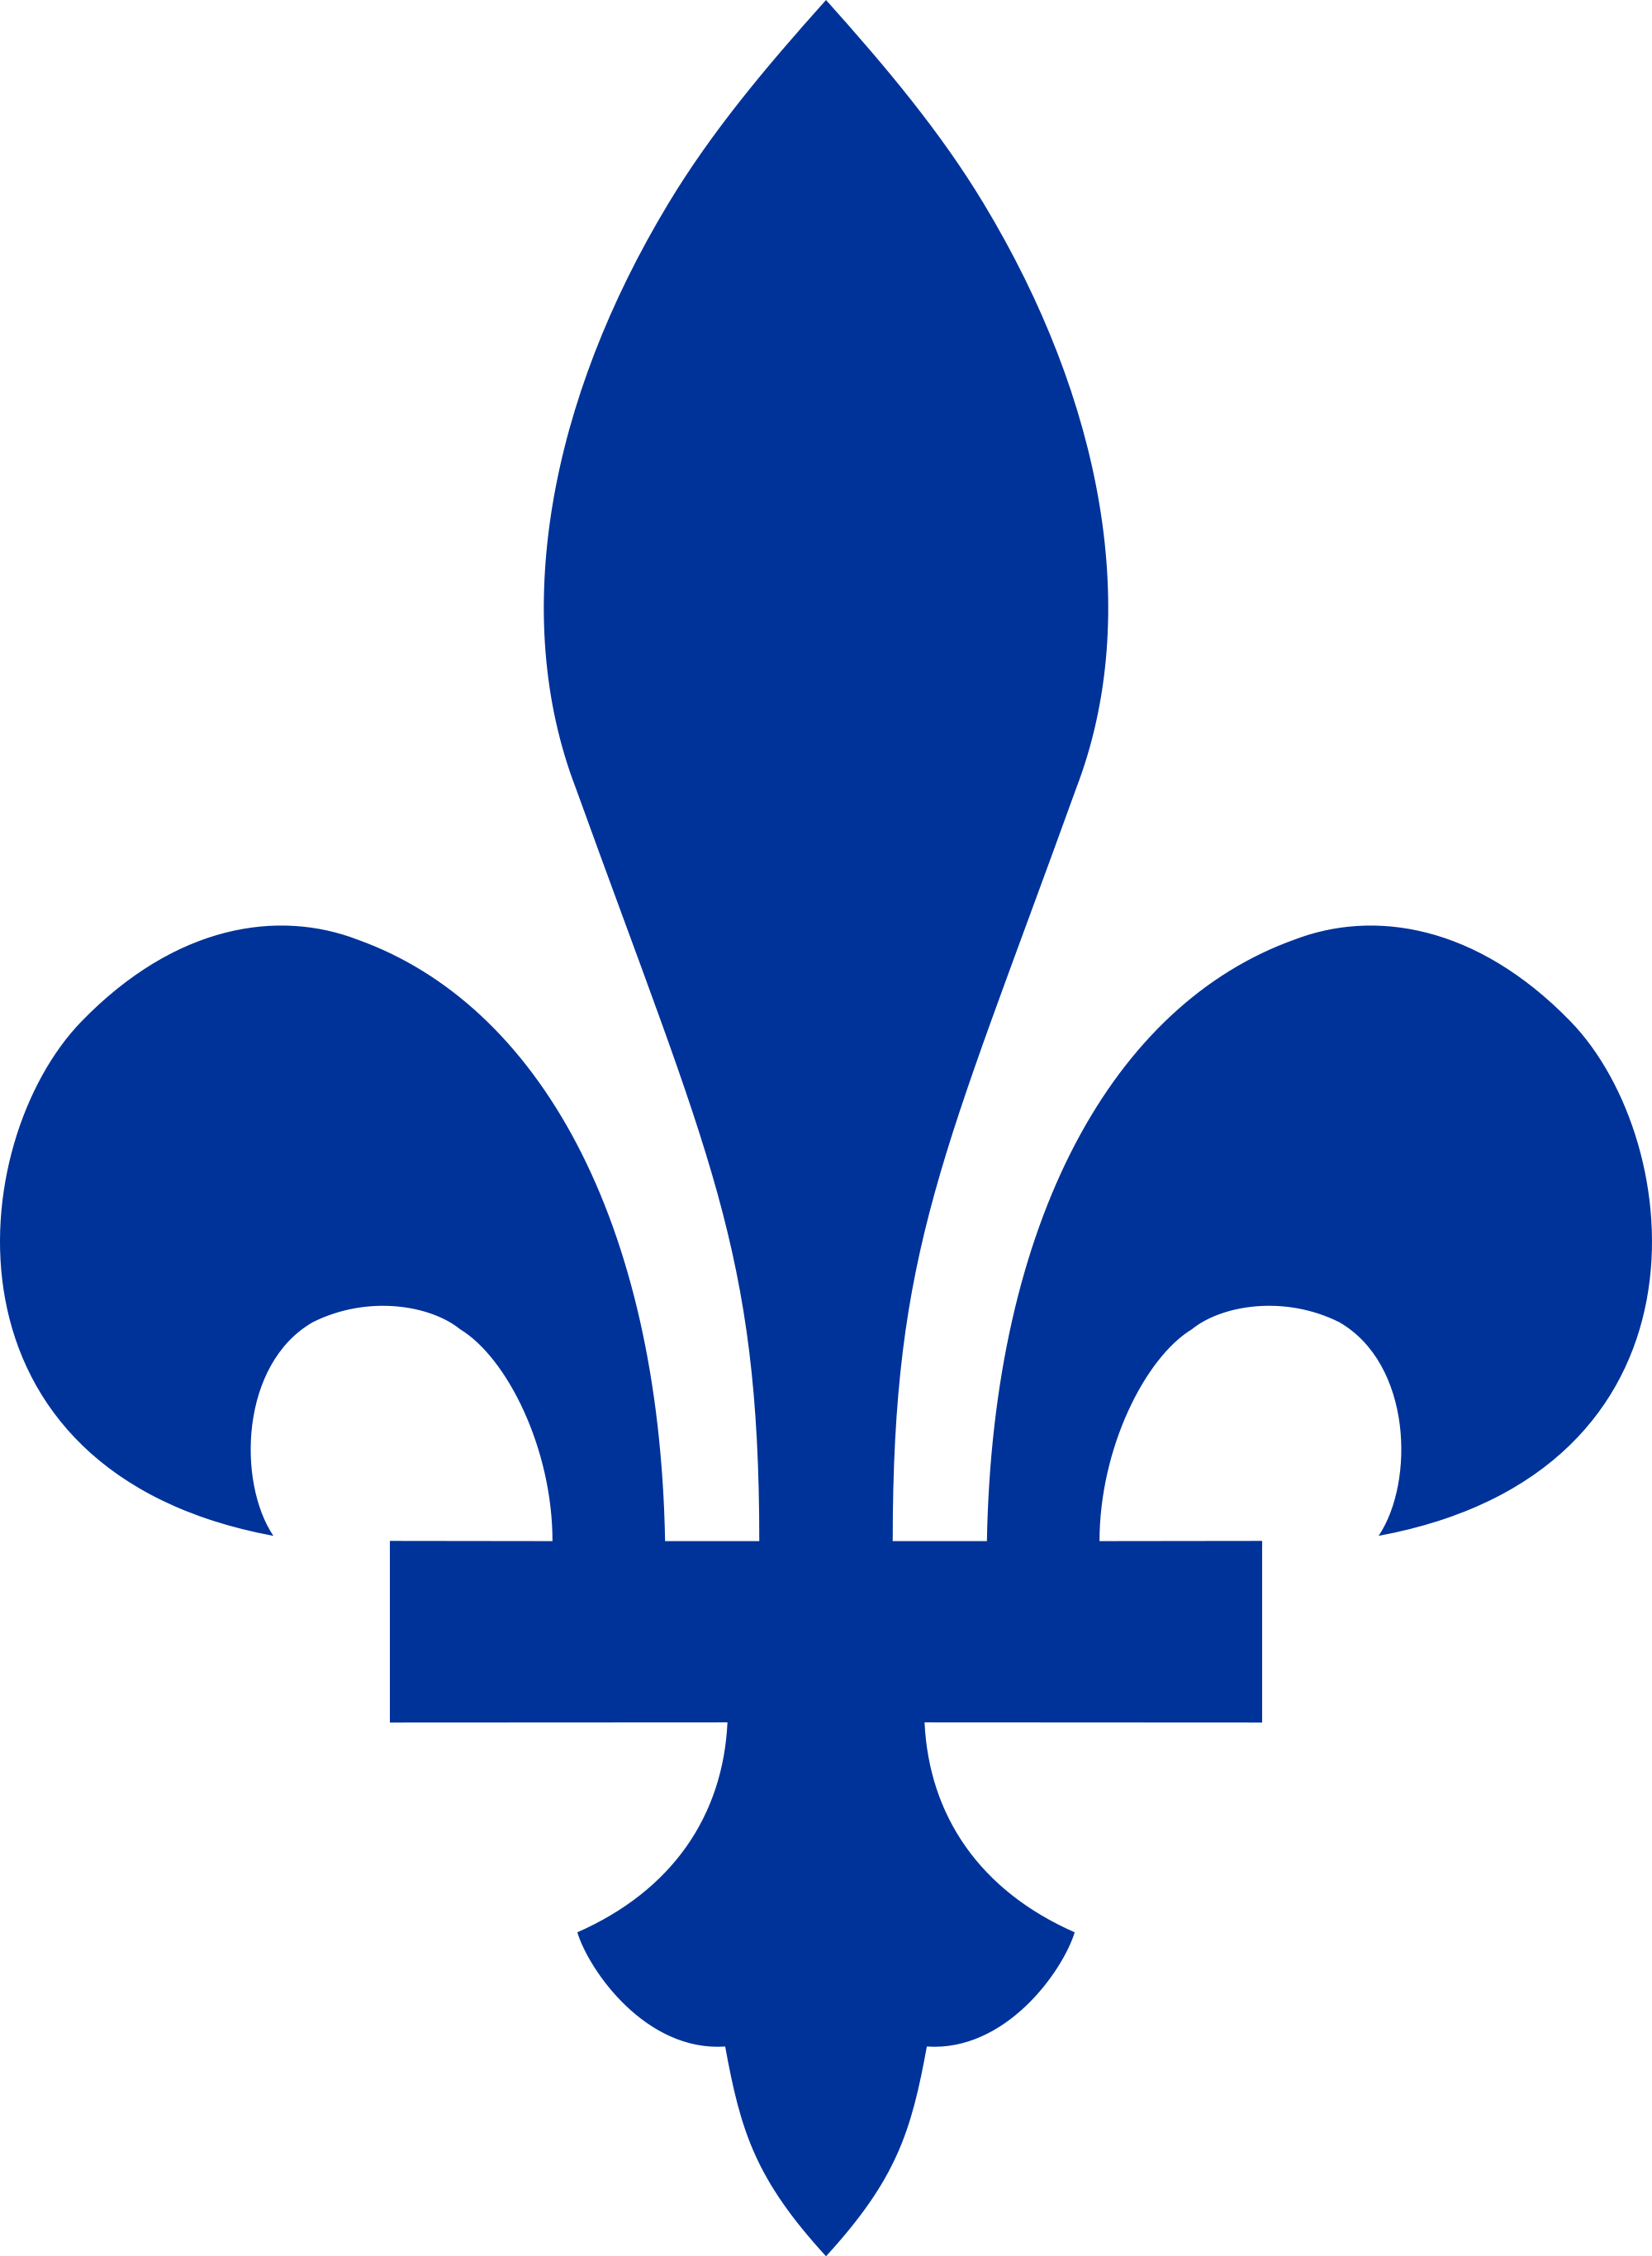 FÊTE NATIONALE DU QUÉBEC – NATIONAL HOLYDAY OF QUEBEC